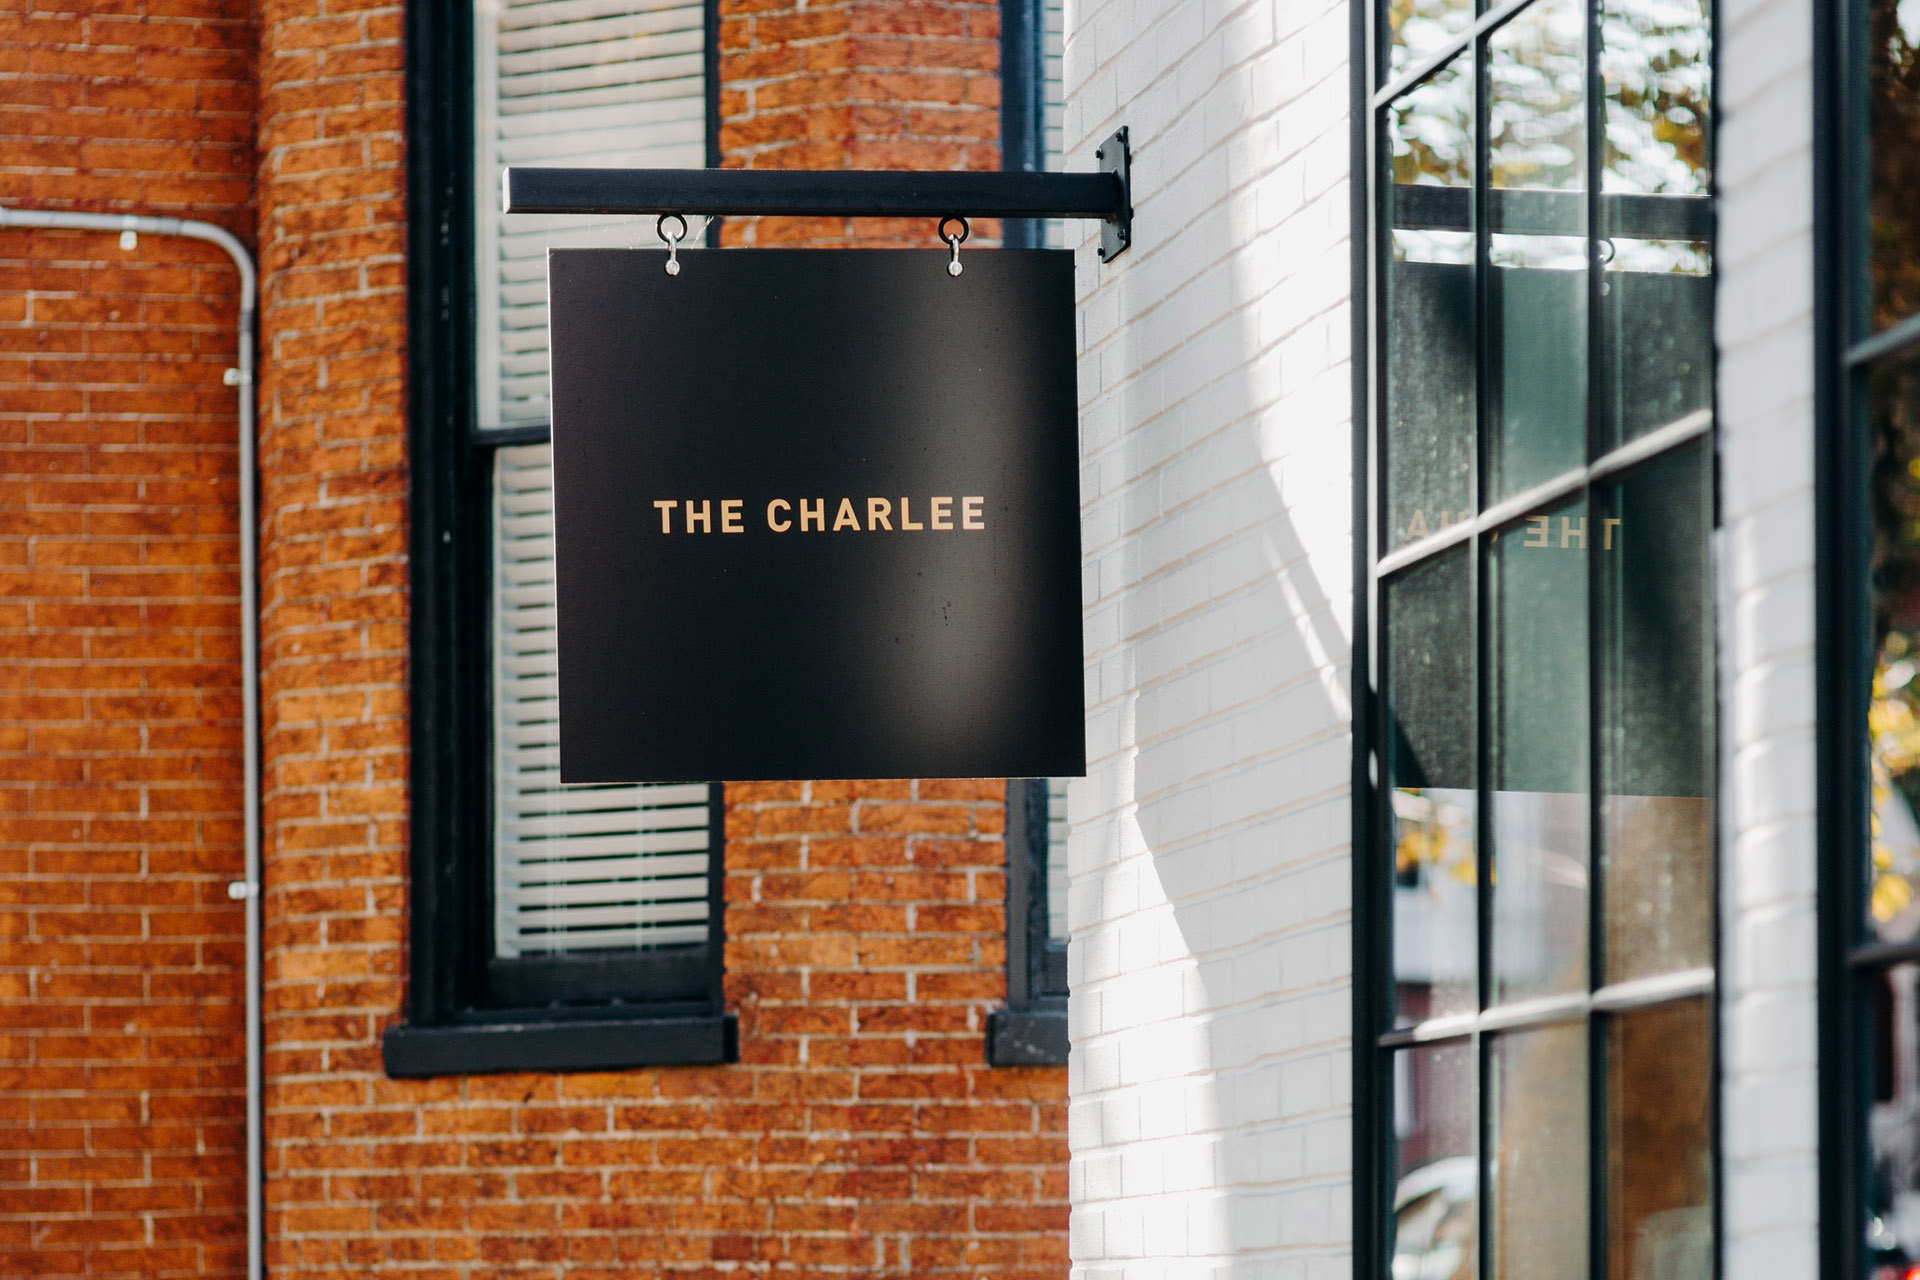 The Charlee salon's outside signage